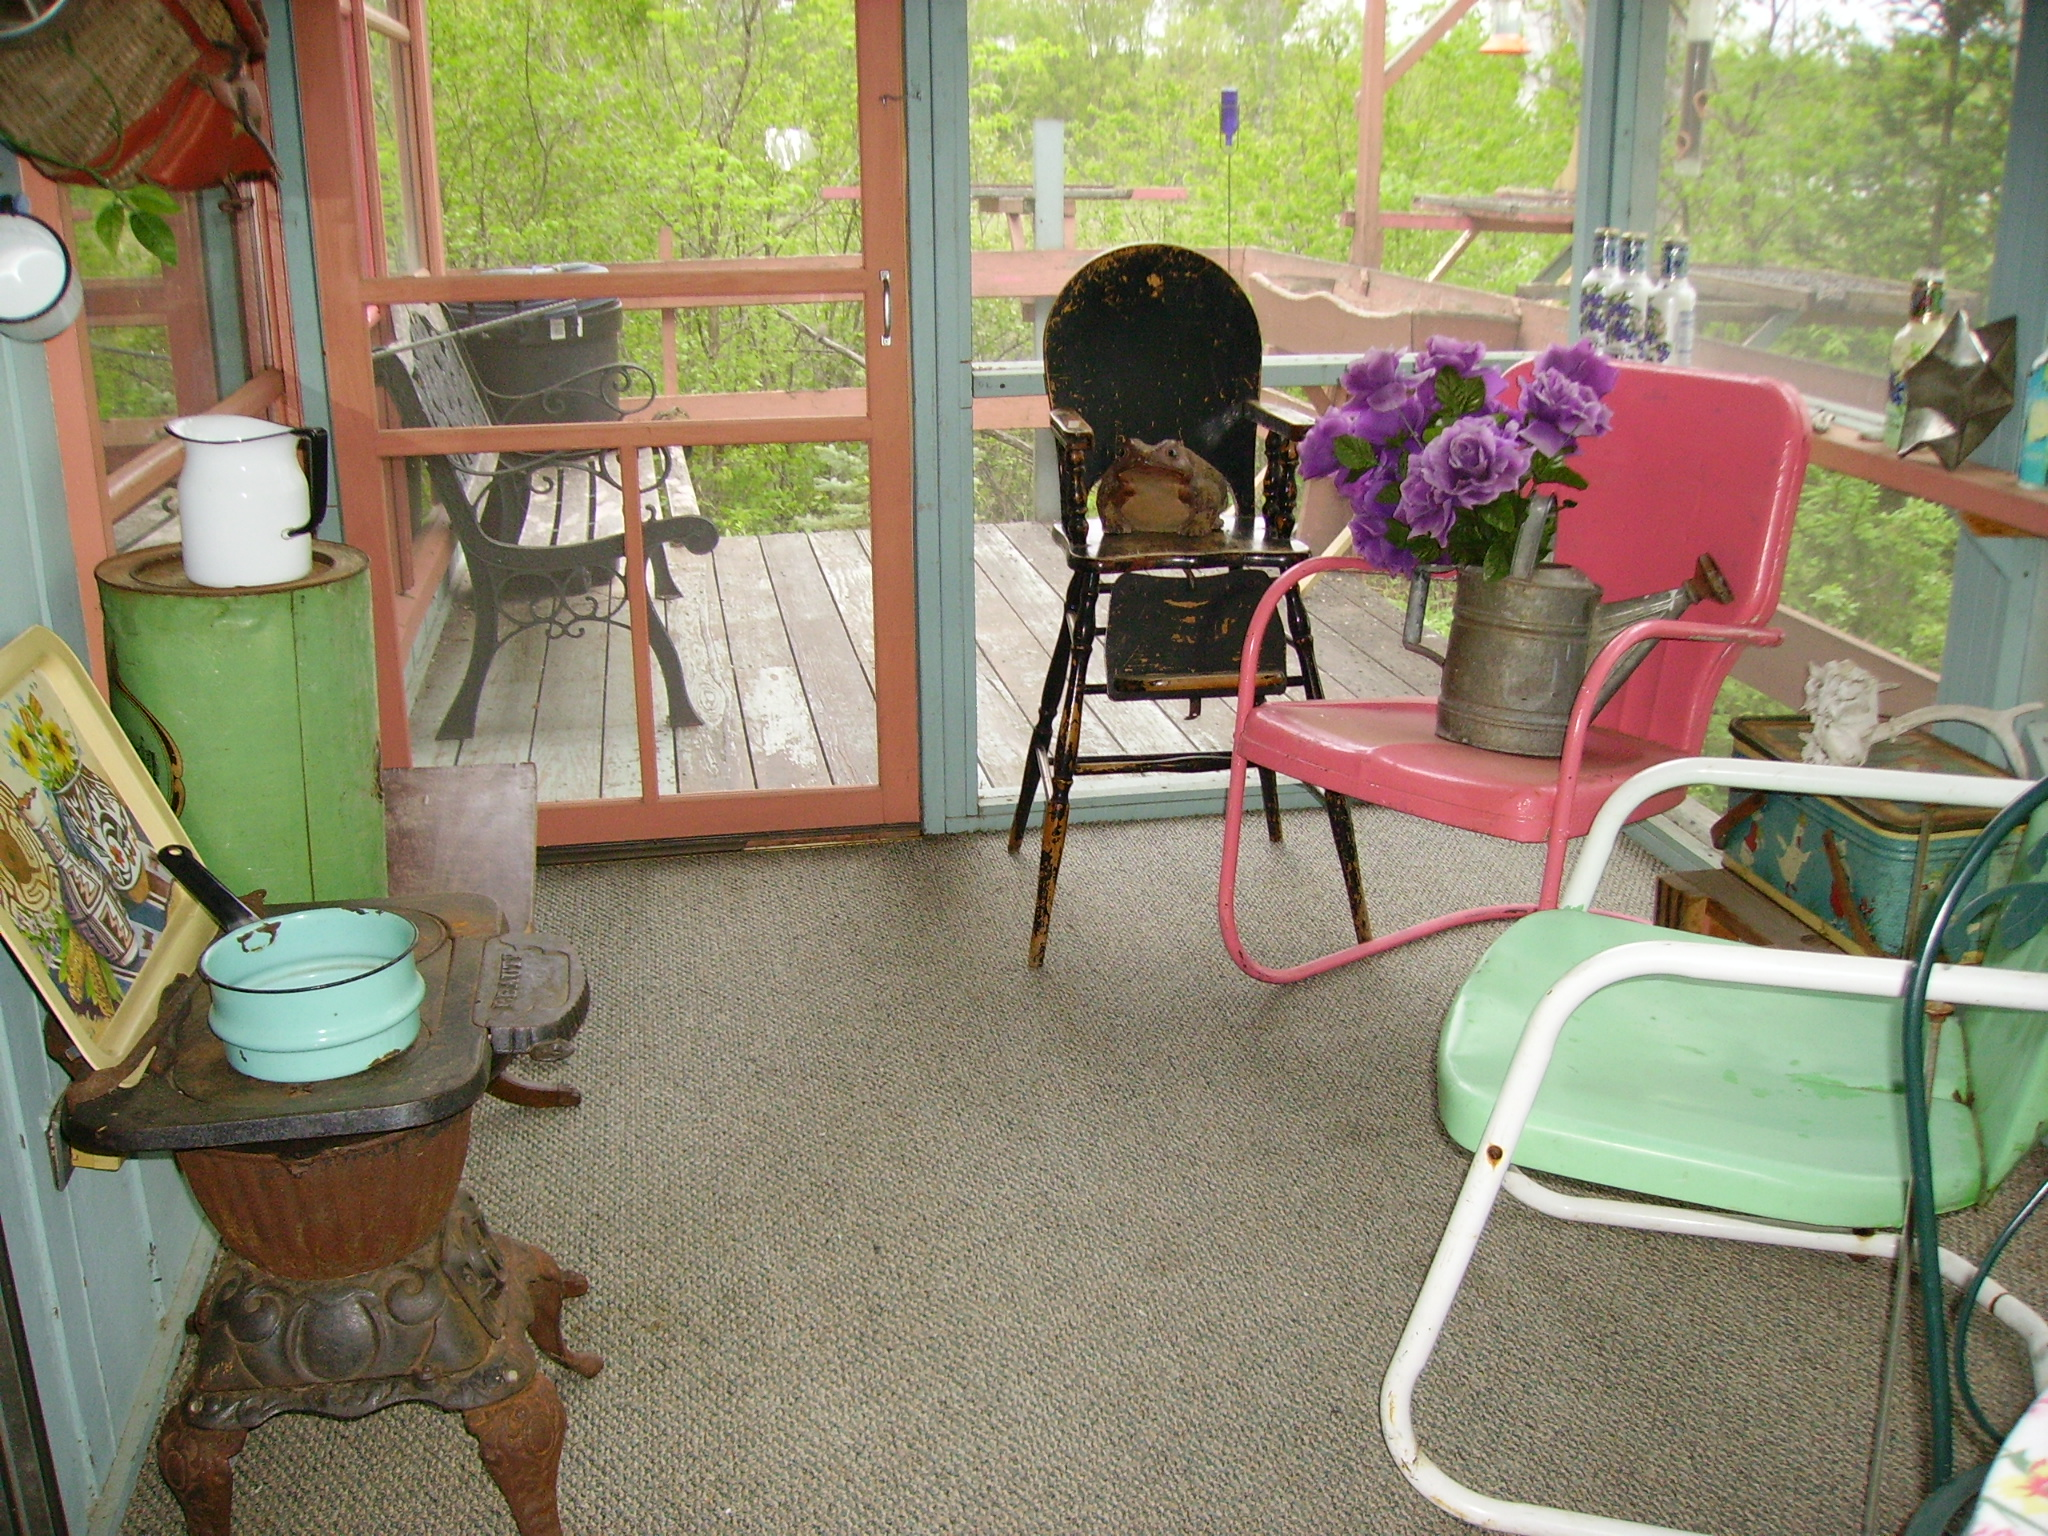 Stove and view of deck from retreat center